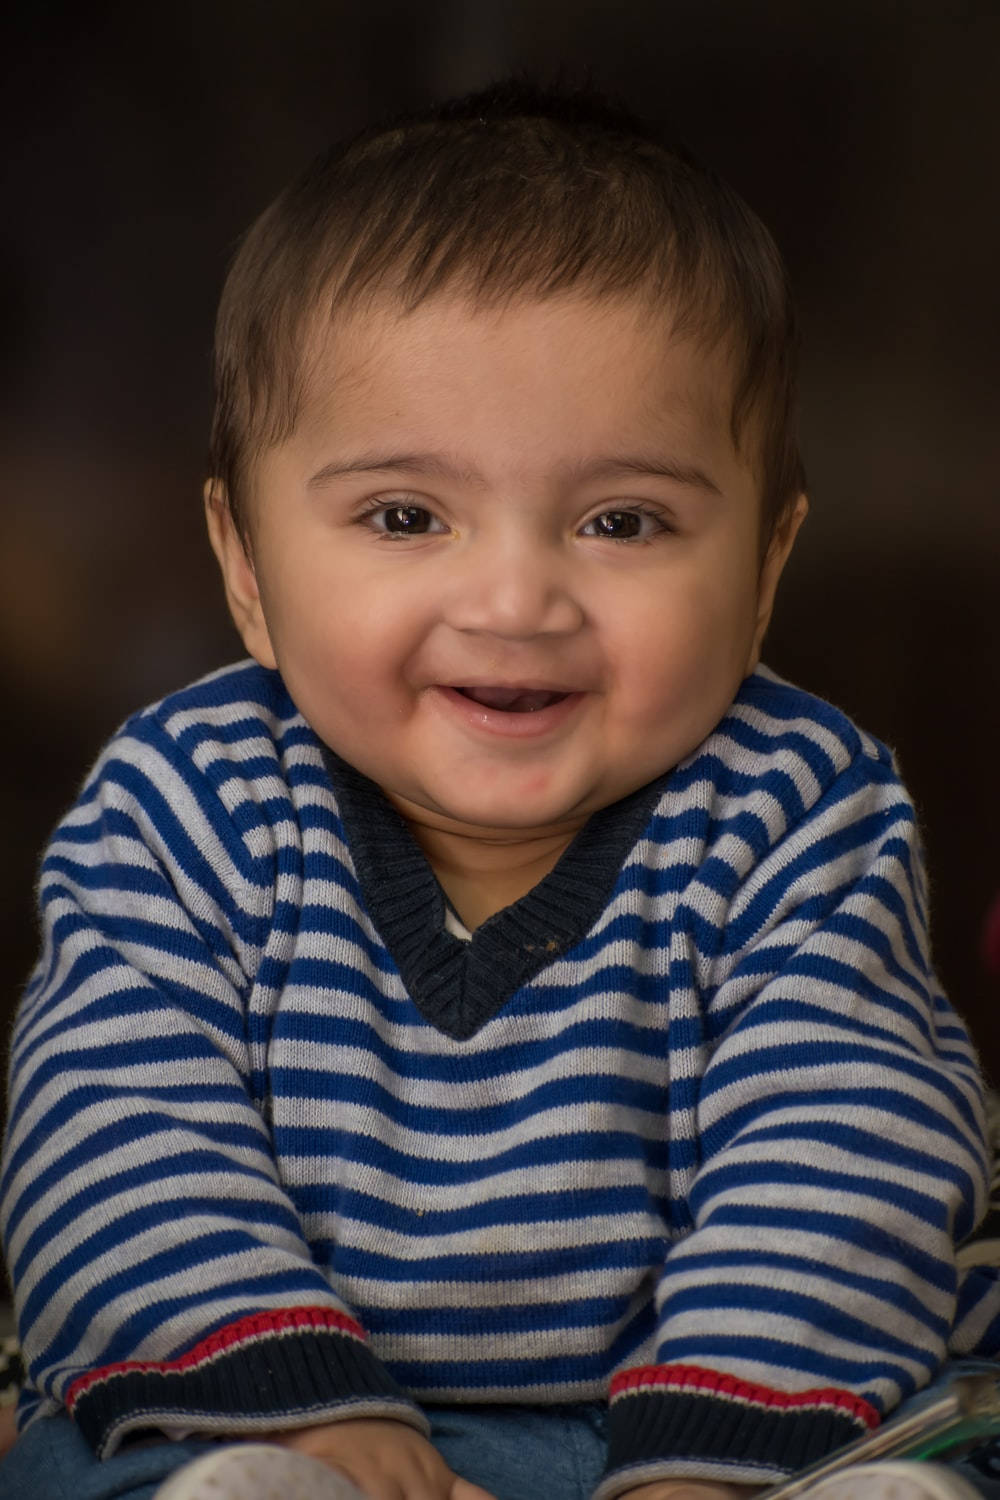 boy in blue and white striped long sleeve shirt smiling